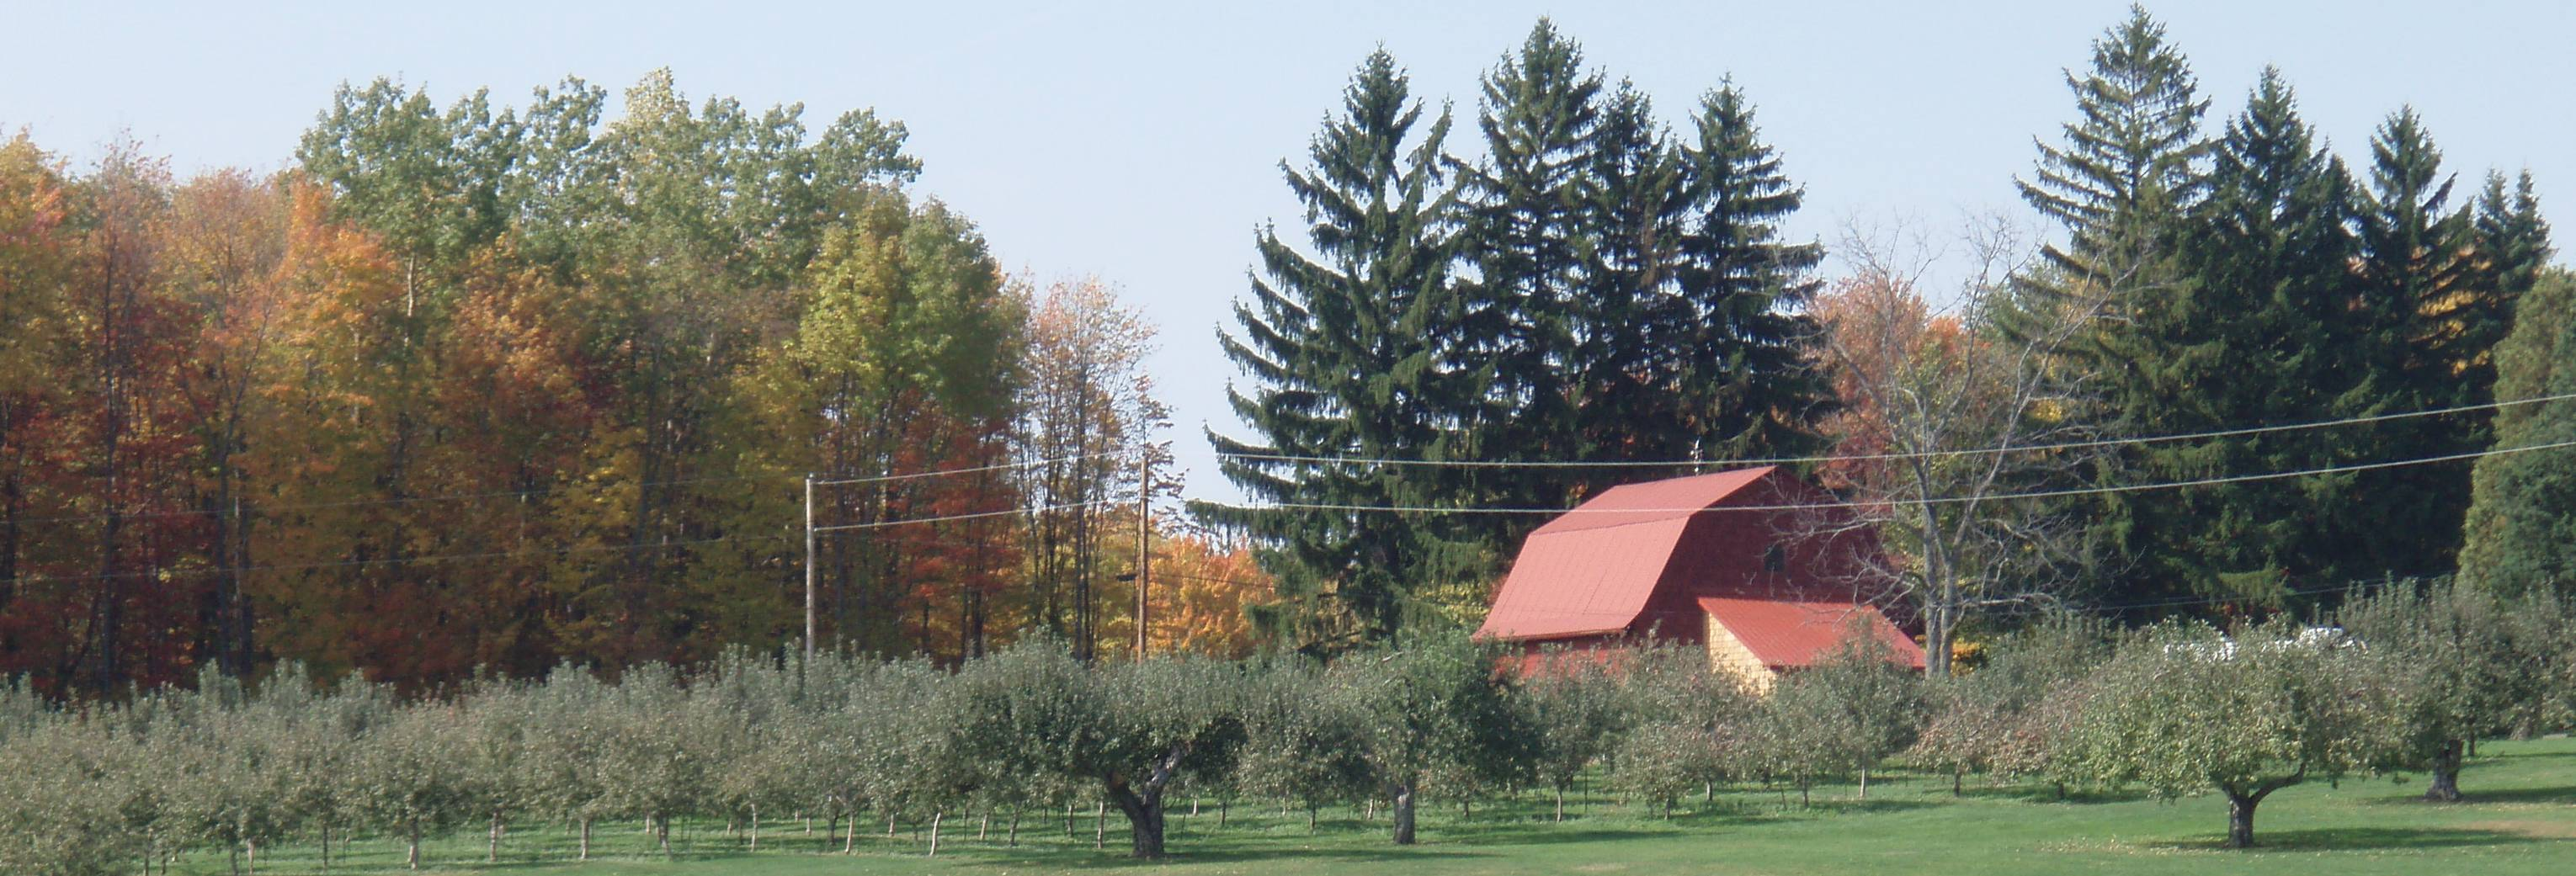 Davenport Fruit Farm